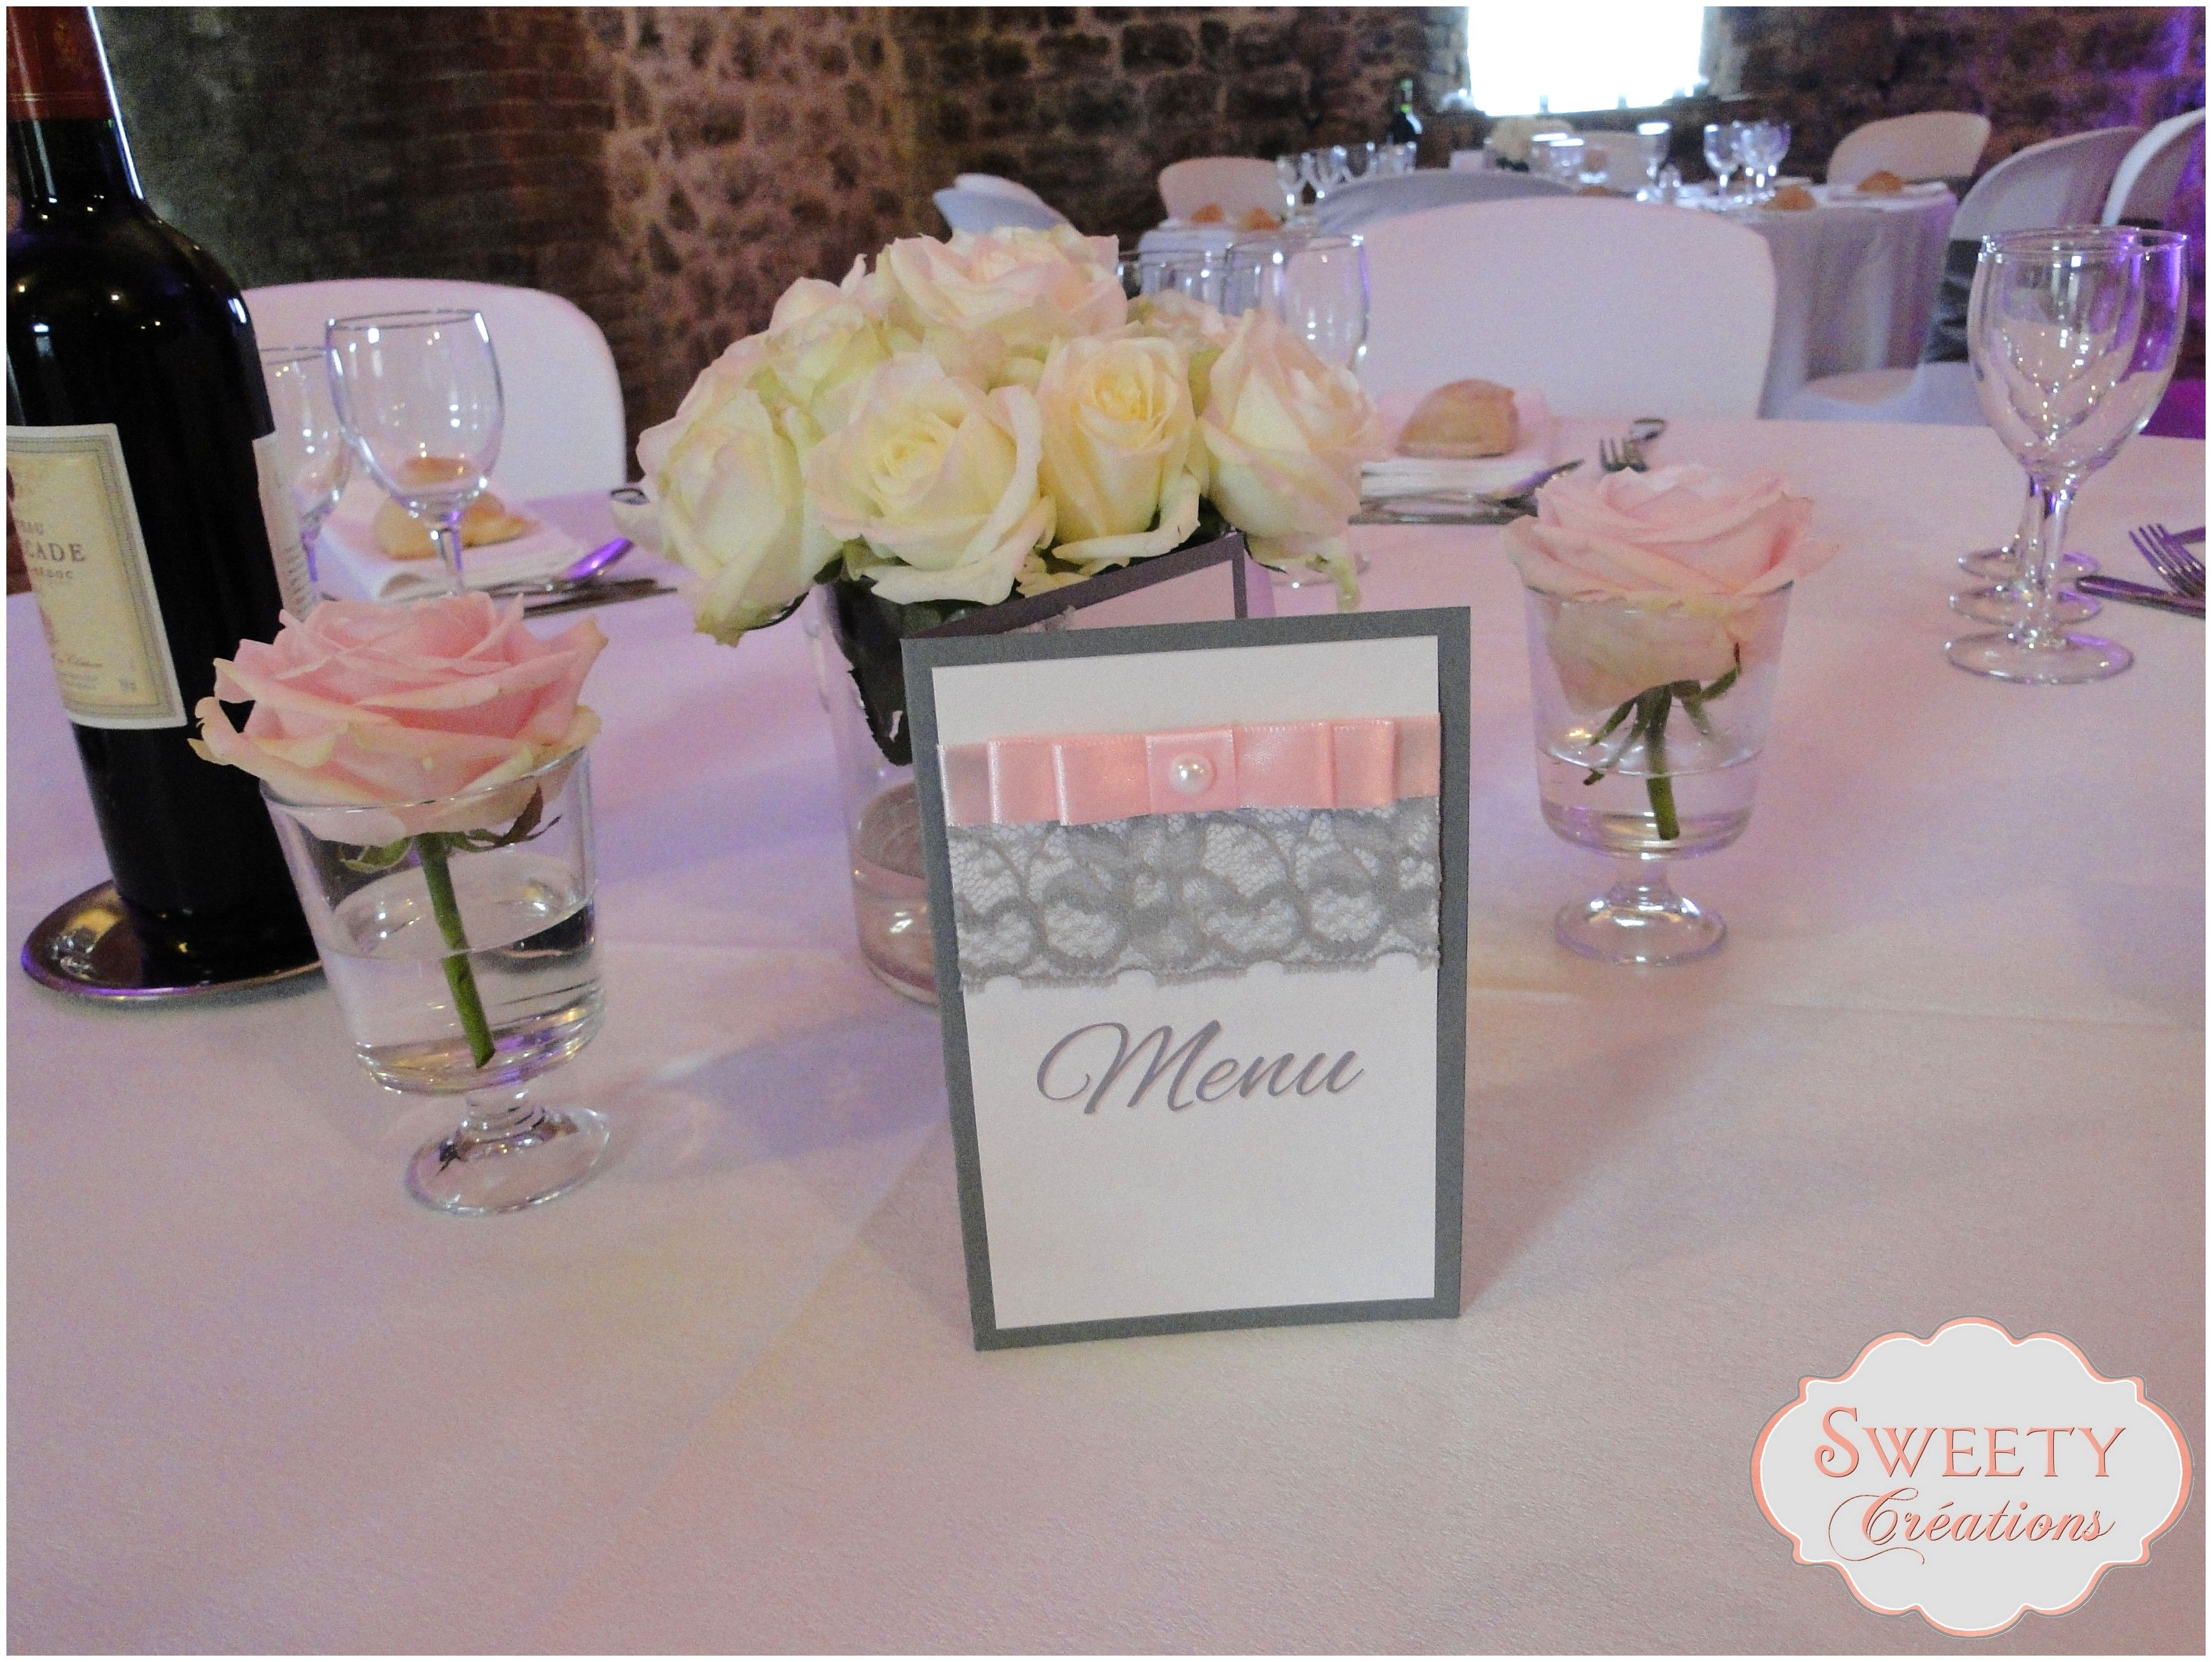 Deco Mariage Theme Gourmandise Décoration Mariage Gourmandise Chic